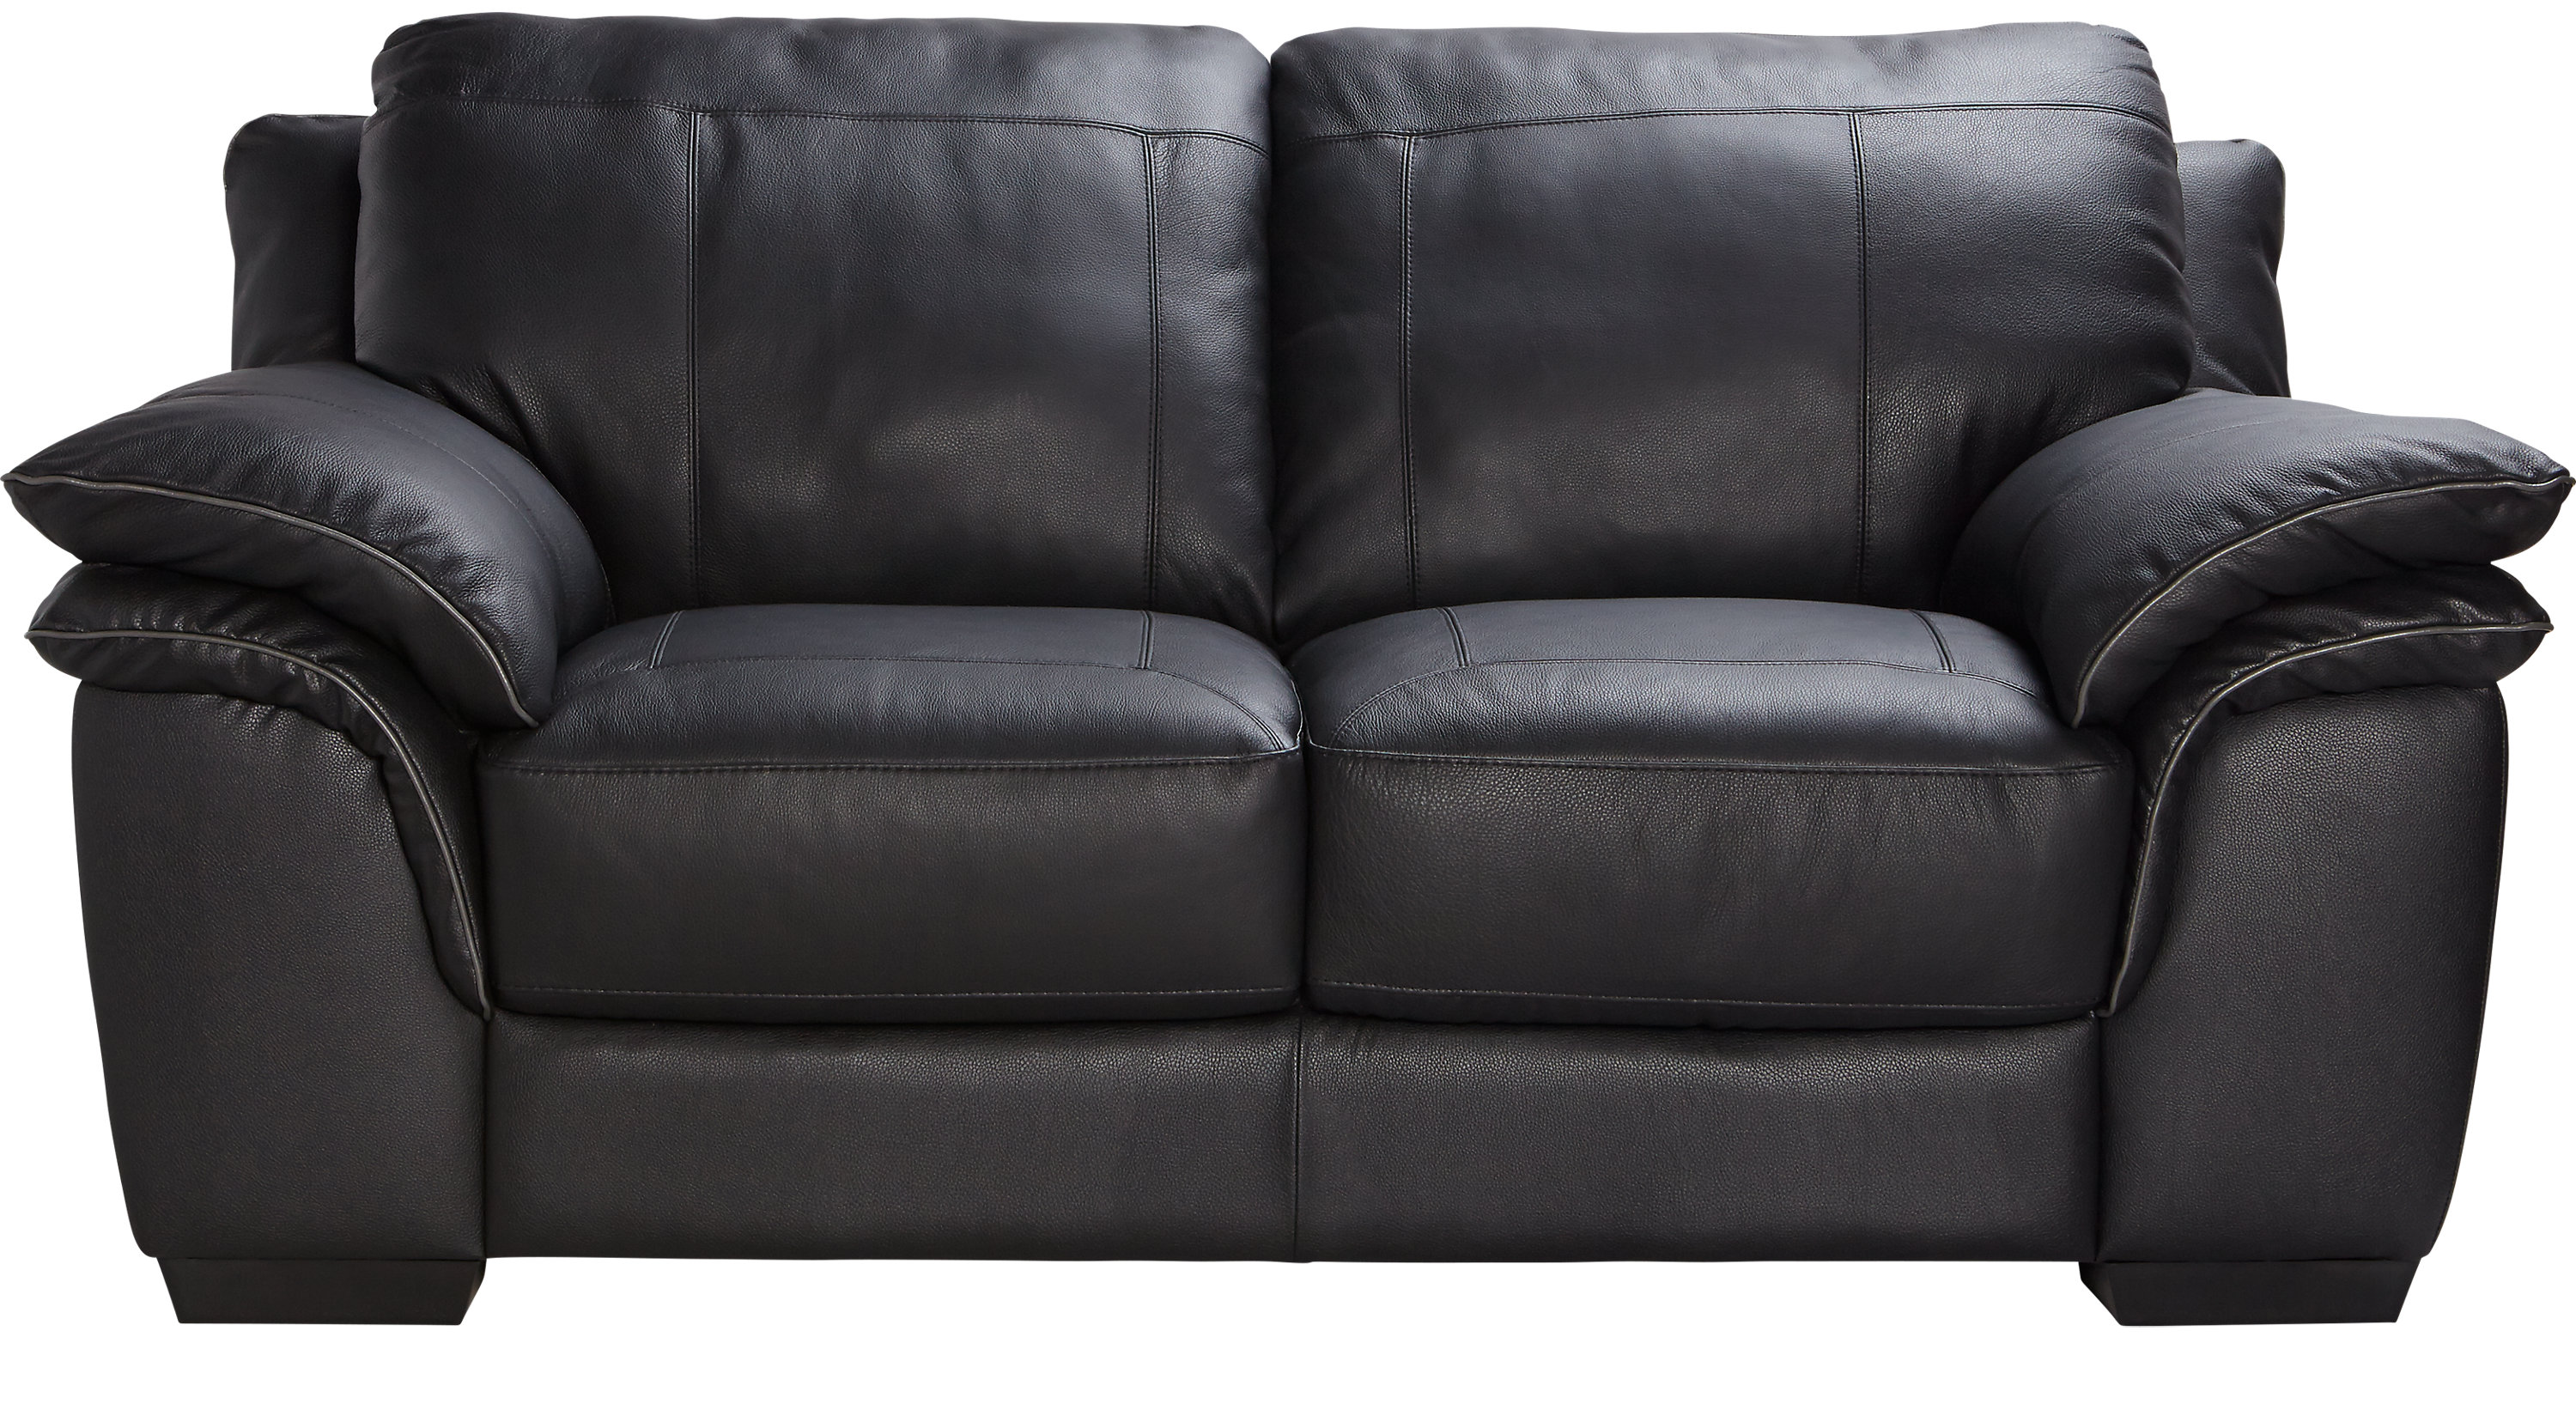 $879.99 - Grand Palazzo Black Leather Loveseat - Classic - Contemporary,